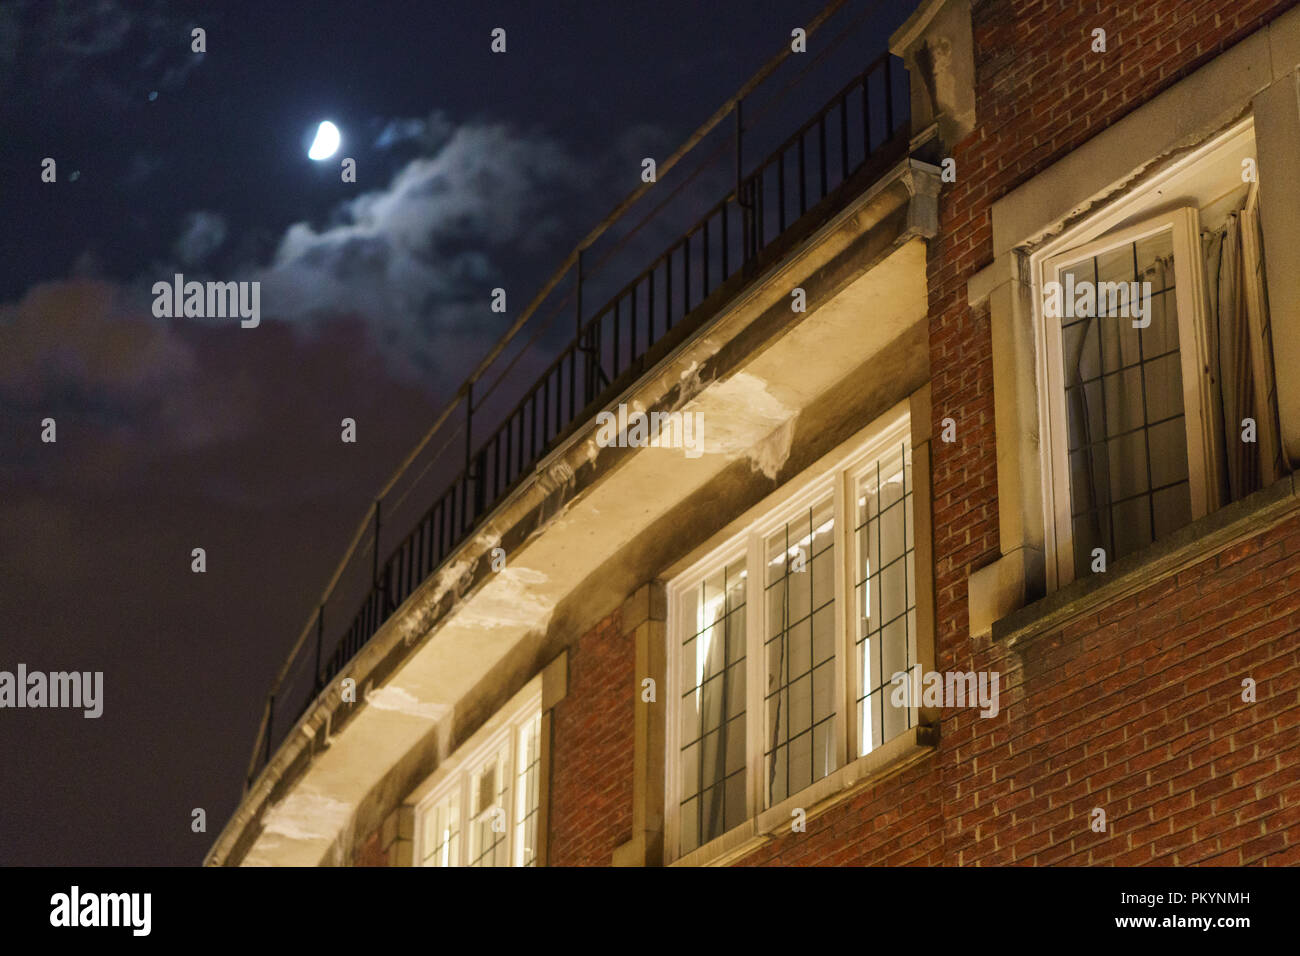 The moon over the city - Stock Image